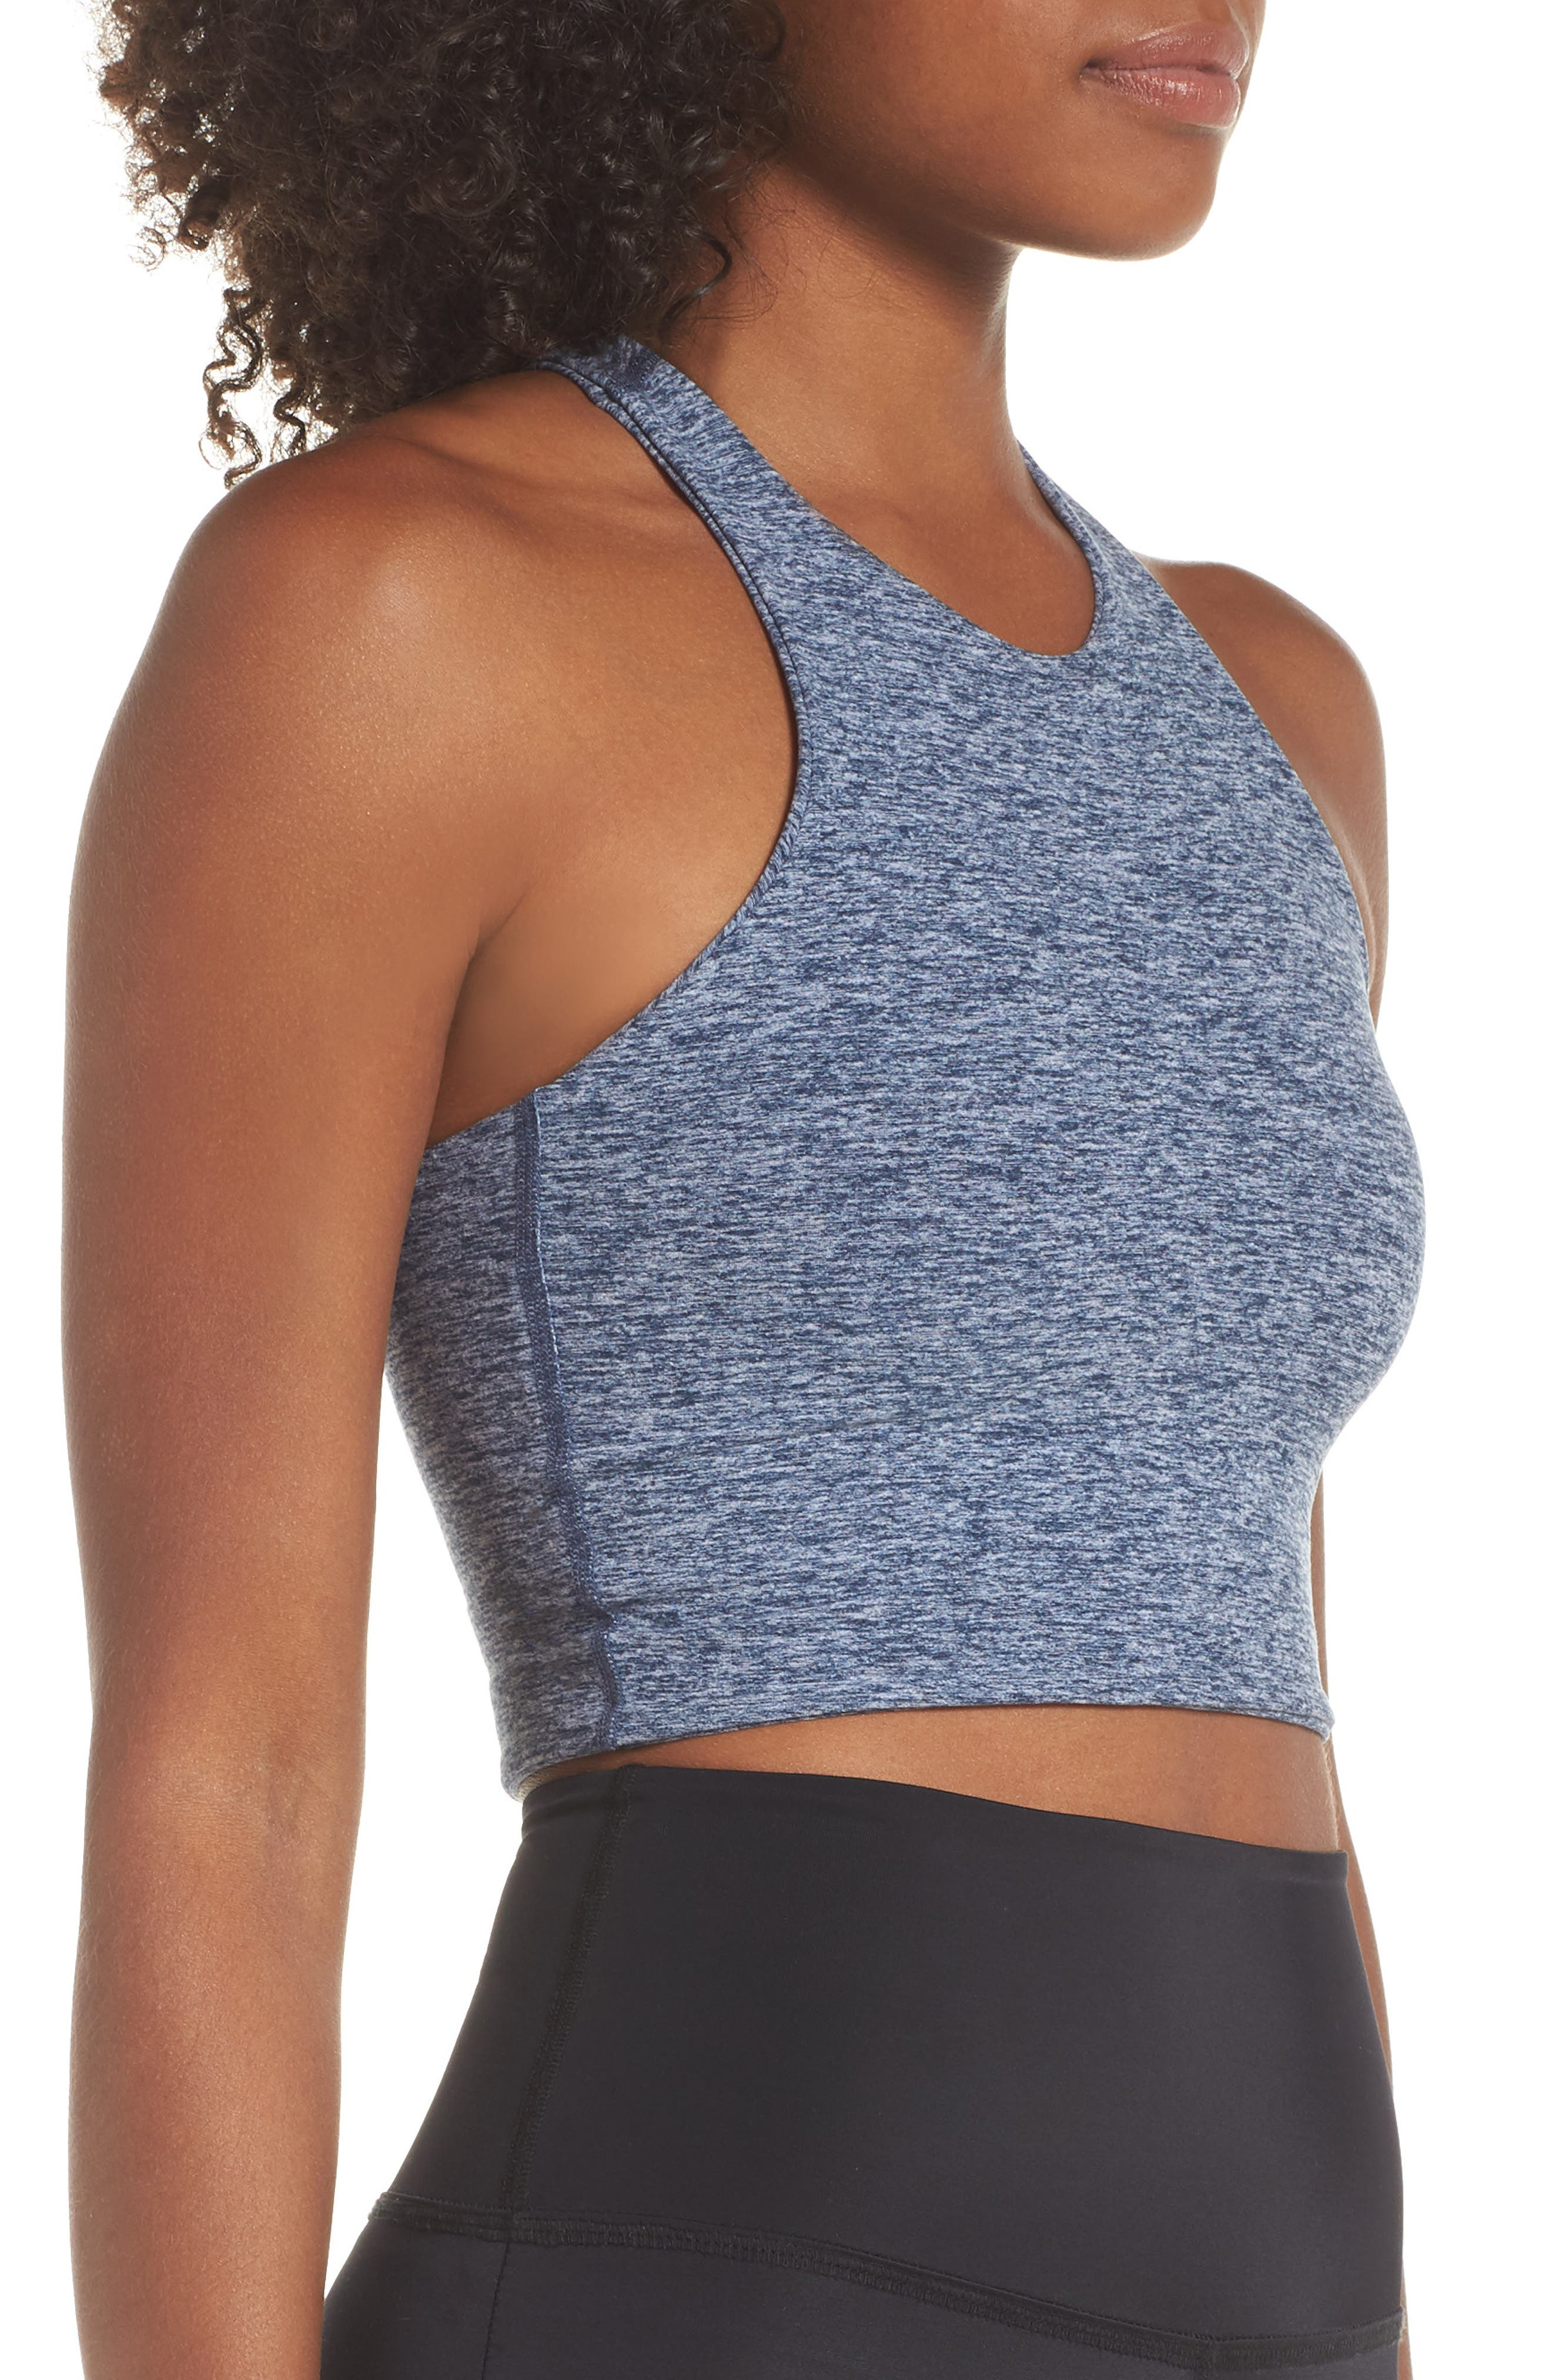 Across the Strap Cropped Top,                             Alternate thumbnail 3, color,                             105